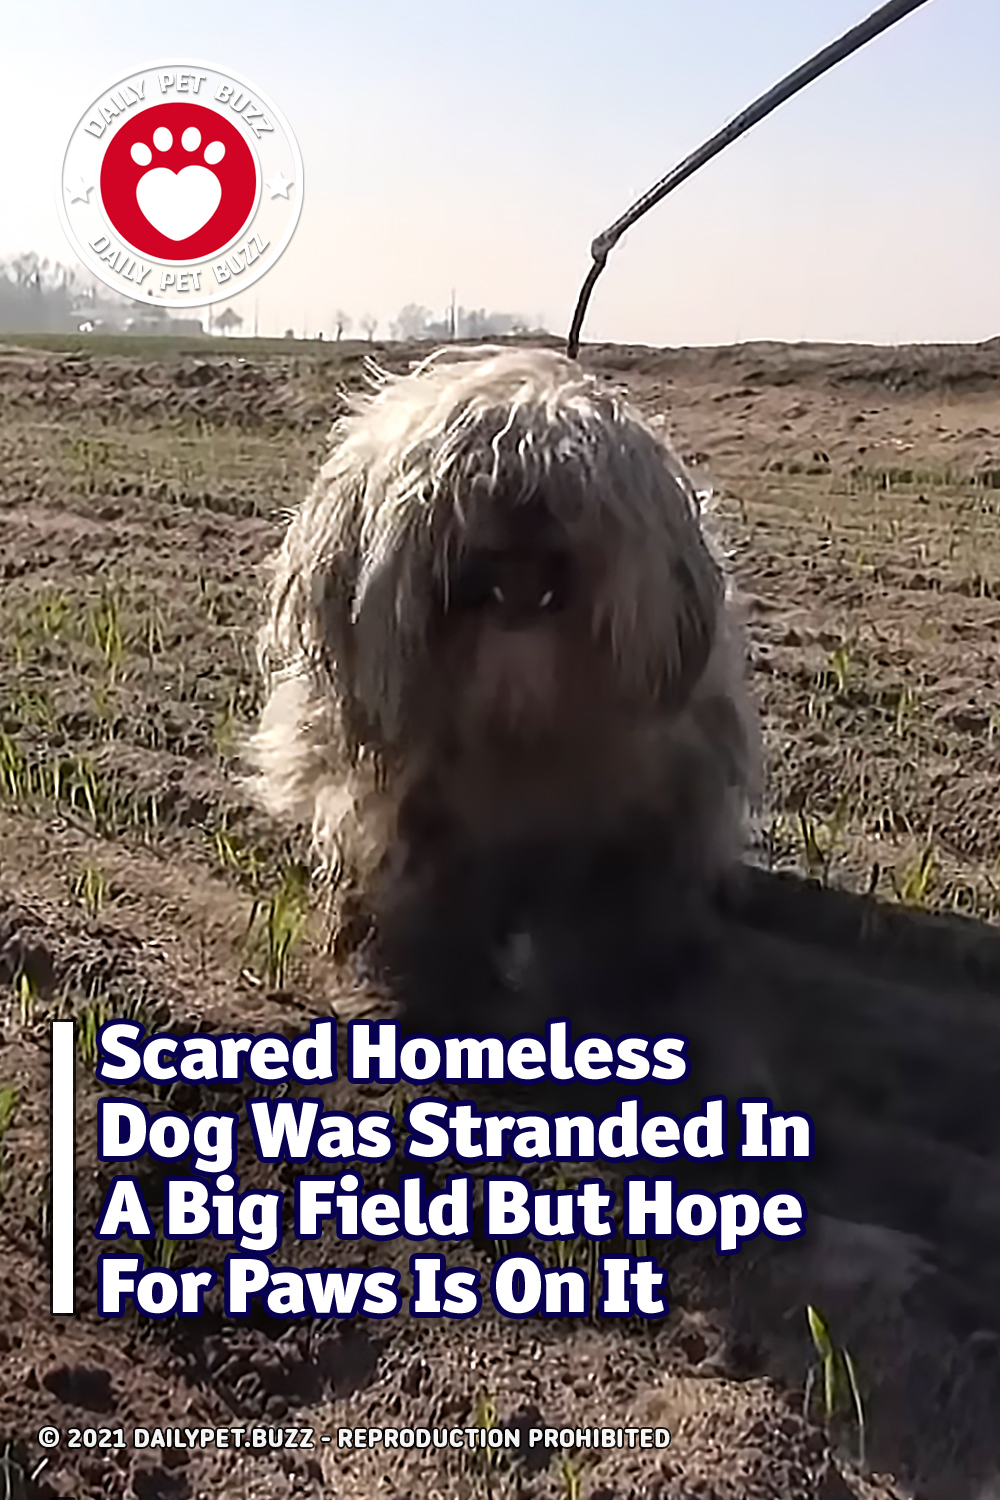 Scared Homeless Dog Was Stranded In A Big Field But Hope For Paws Is On It